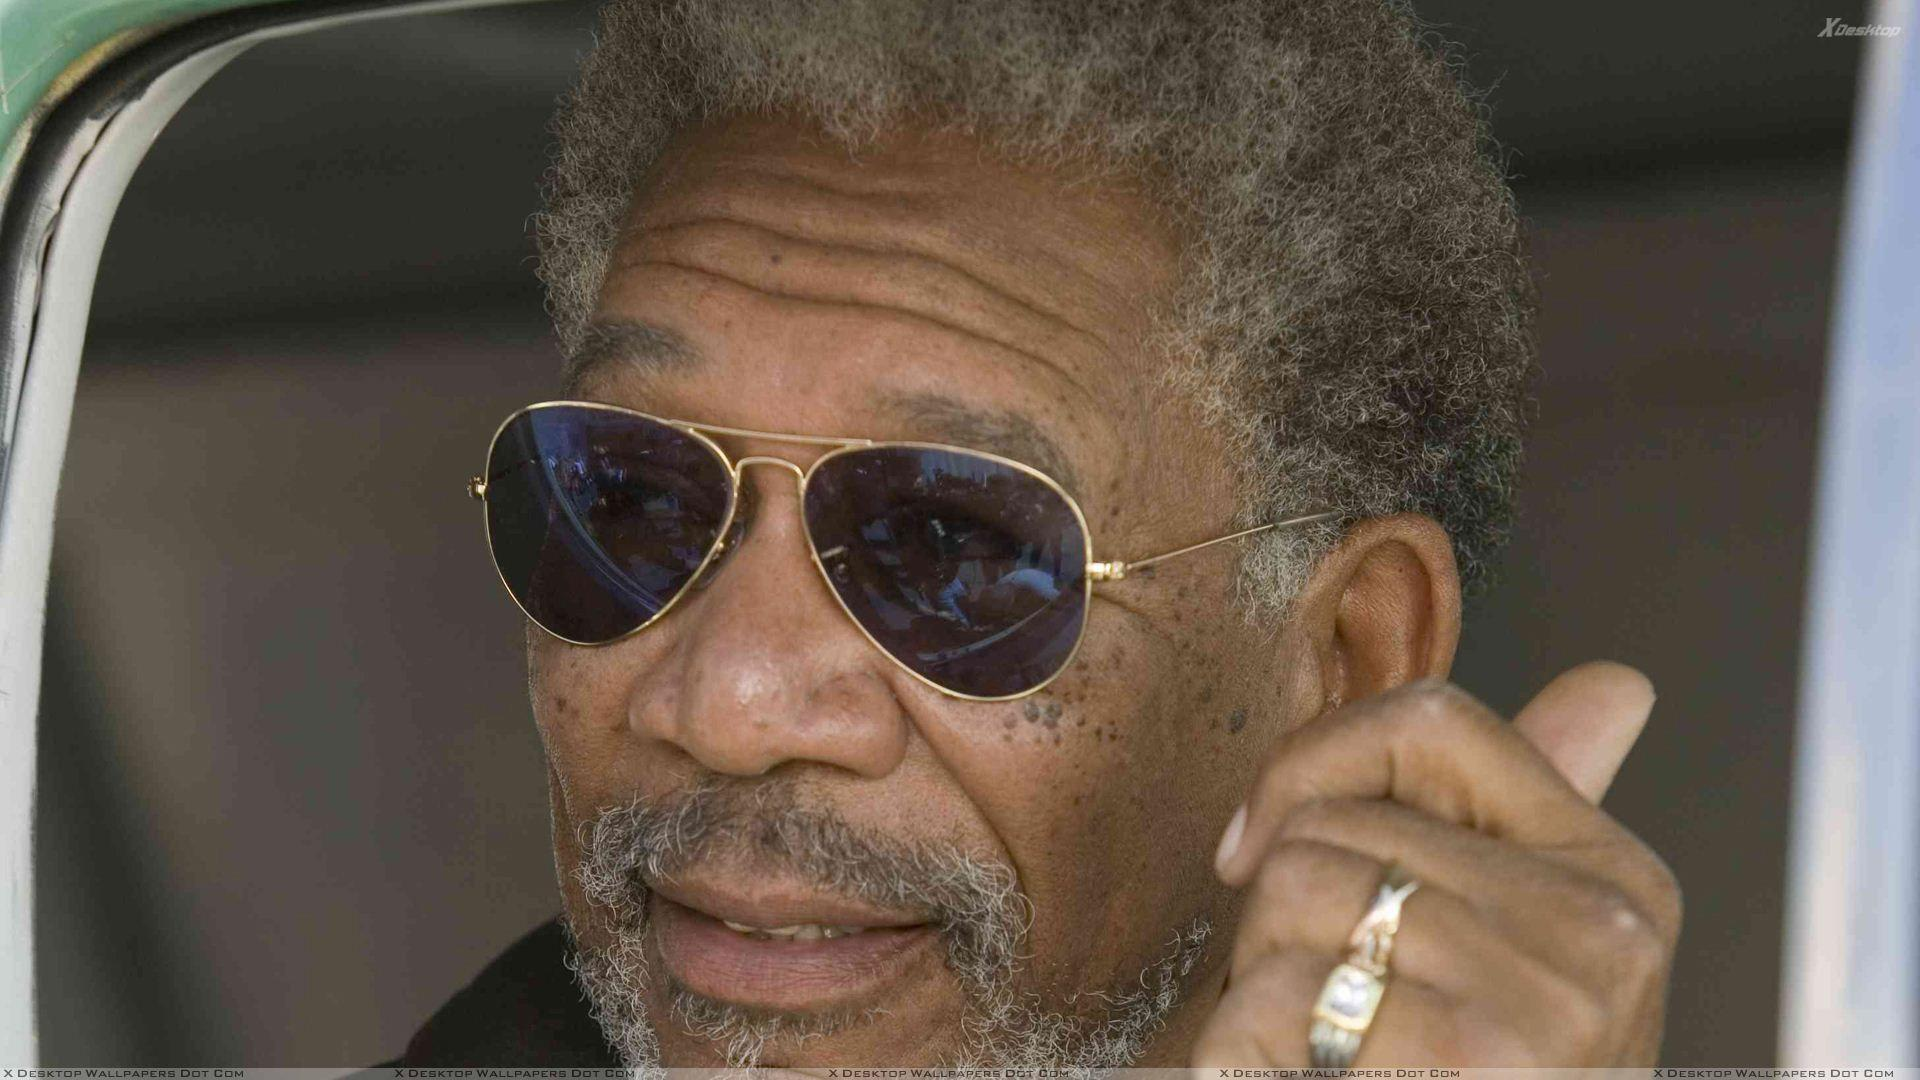 Morgan Freeman Wallpapers, Photos & Images in HD